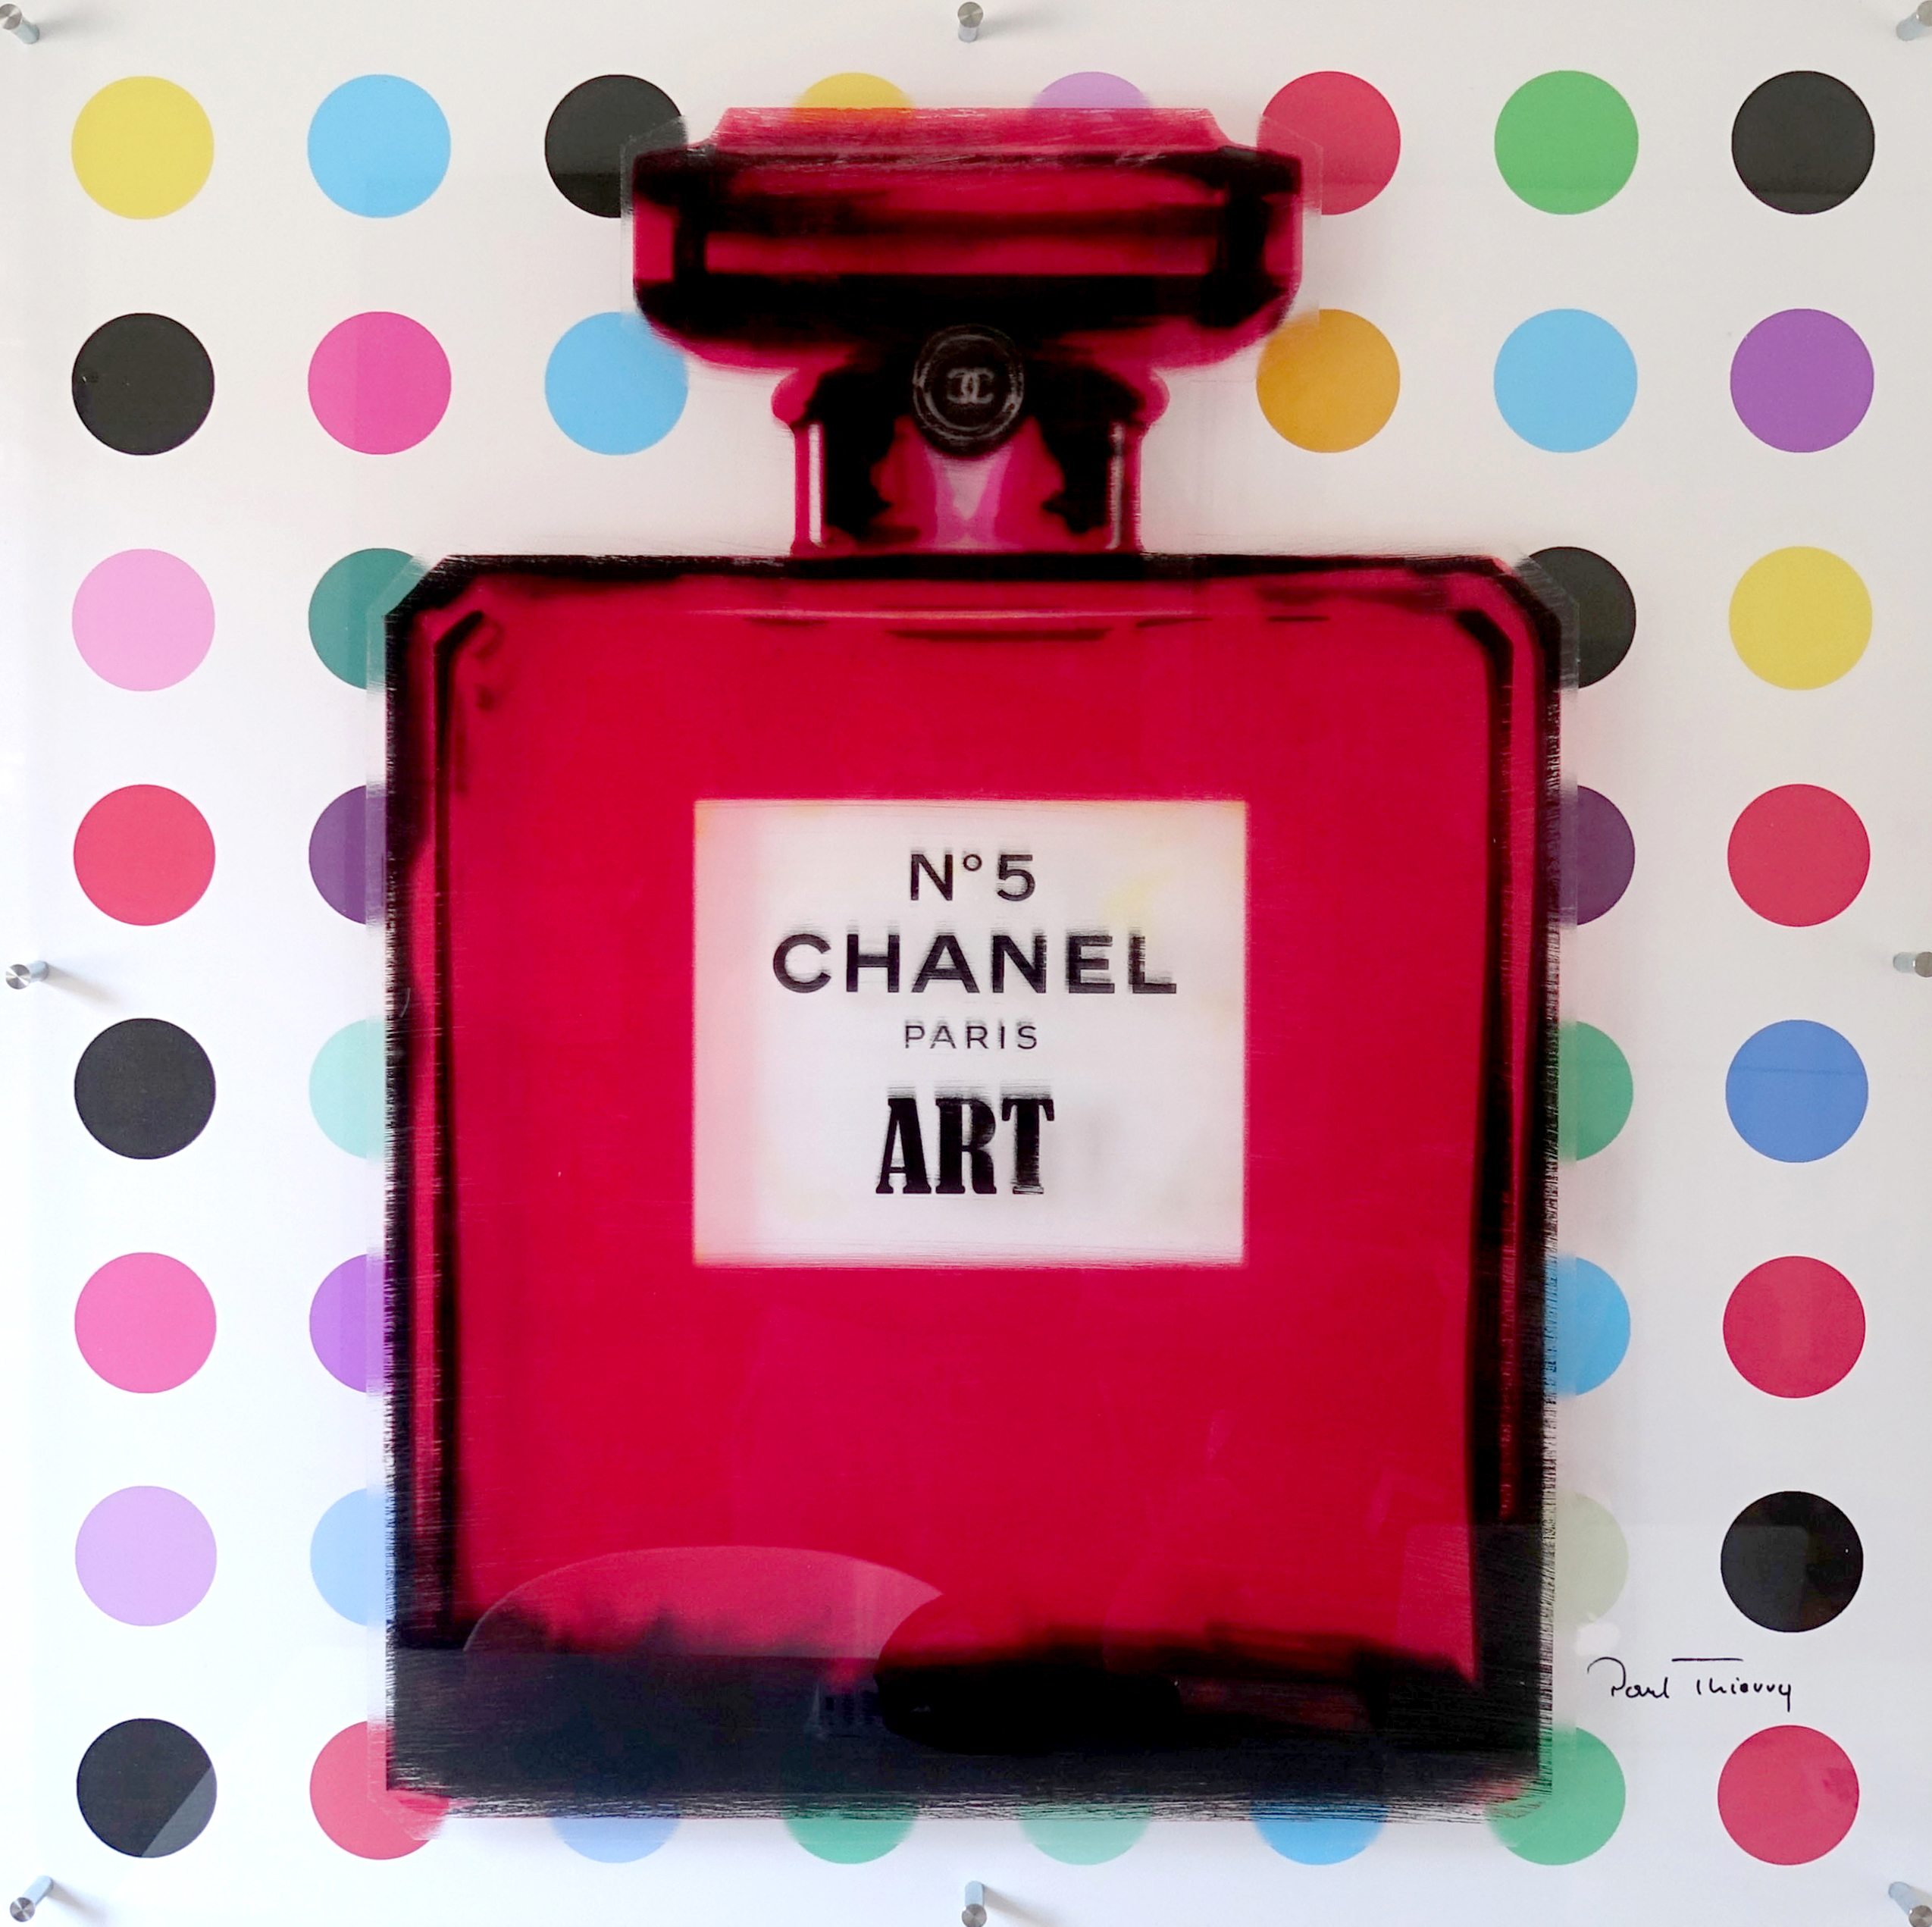 Paul Thierry - Chanel Art (Rot) , 6596-008-030